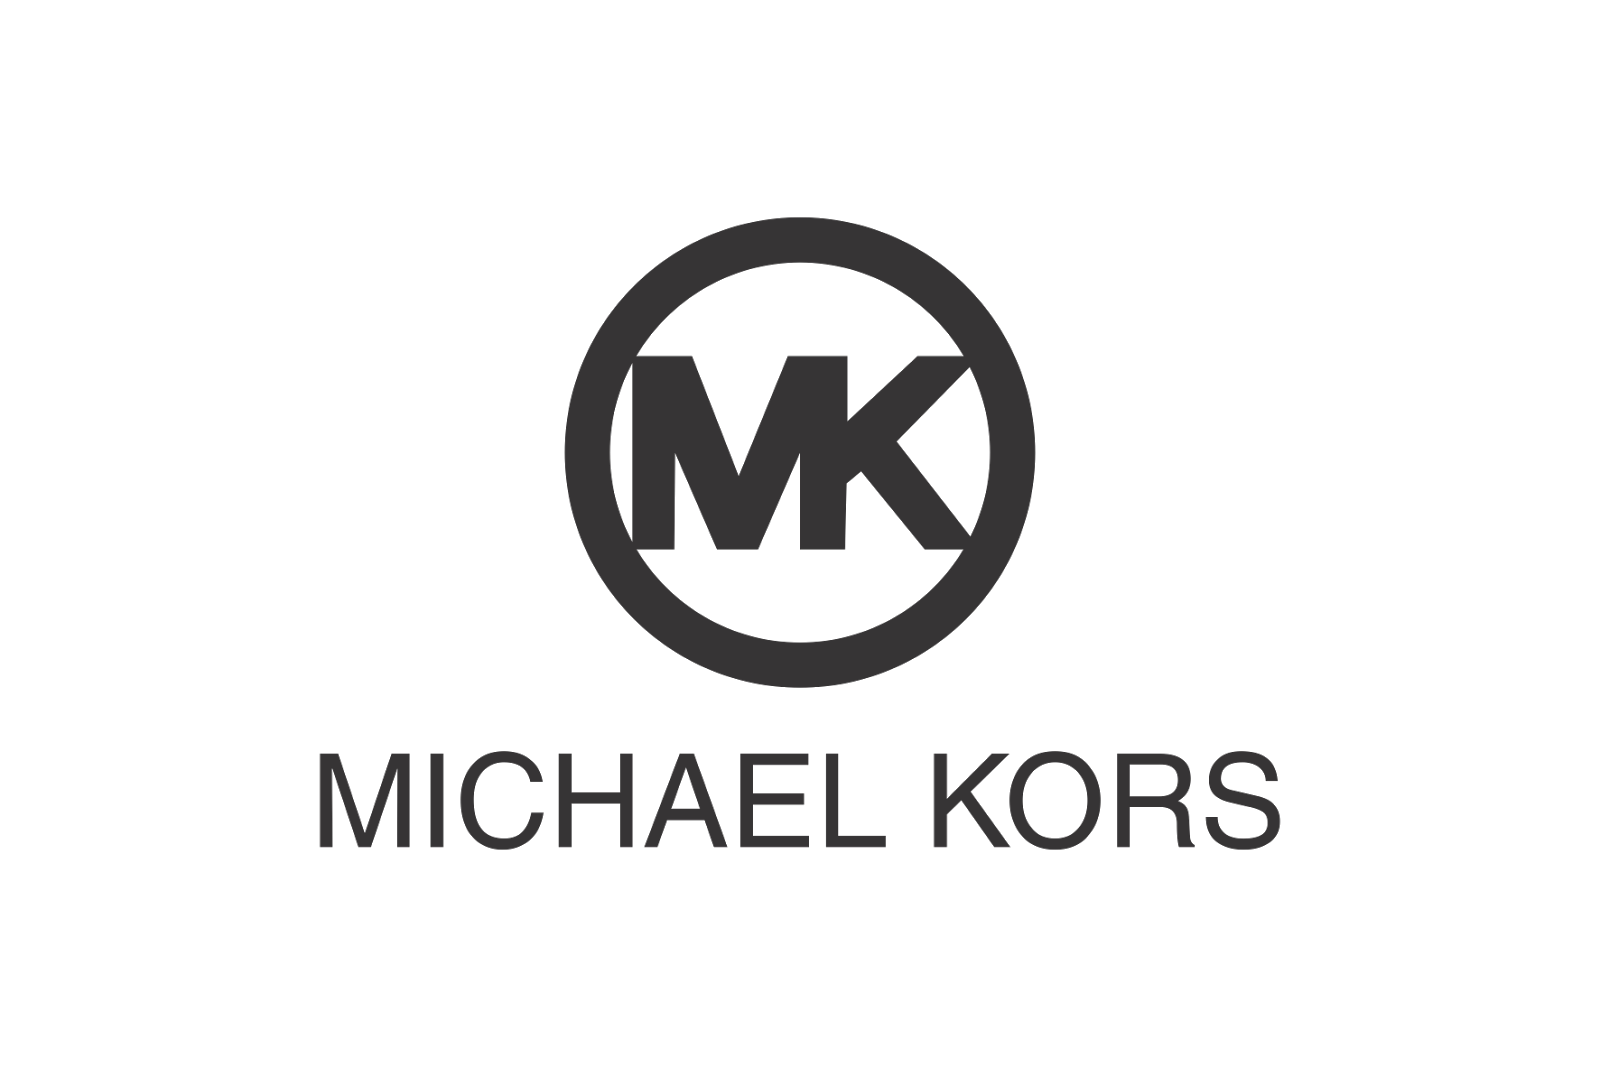 Fussball Schwarz Rot Gold together with Chinese symbol respect gifts moreover Product product id 237 furthermore Michael Kors Logo Pictures additionally Diy freddy krueger glove templates. on gold iphone 4